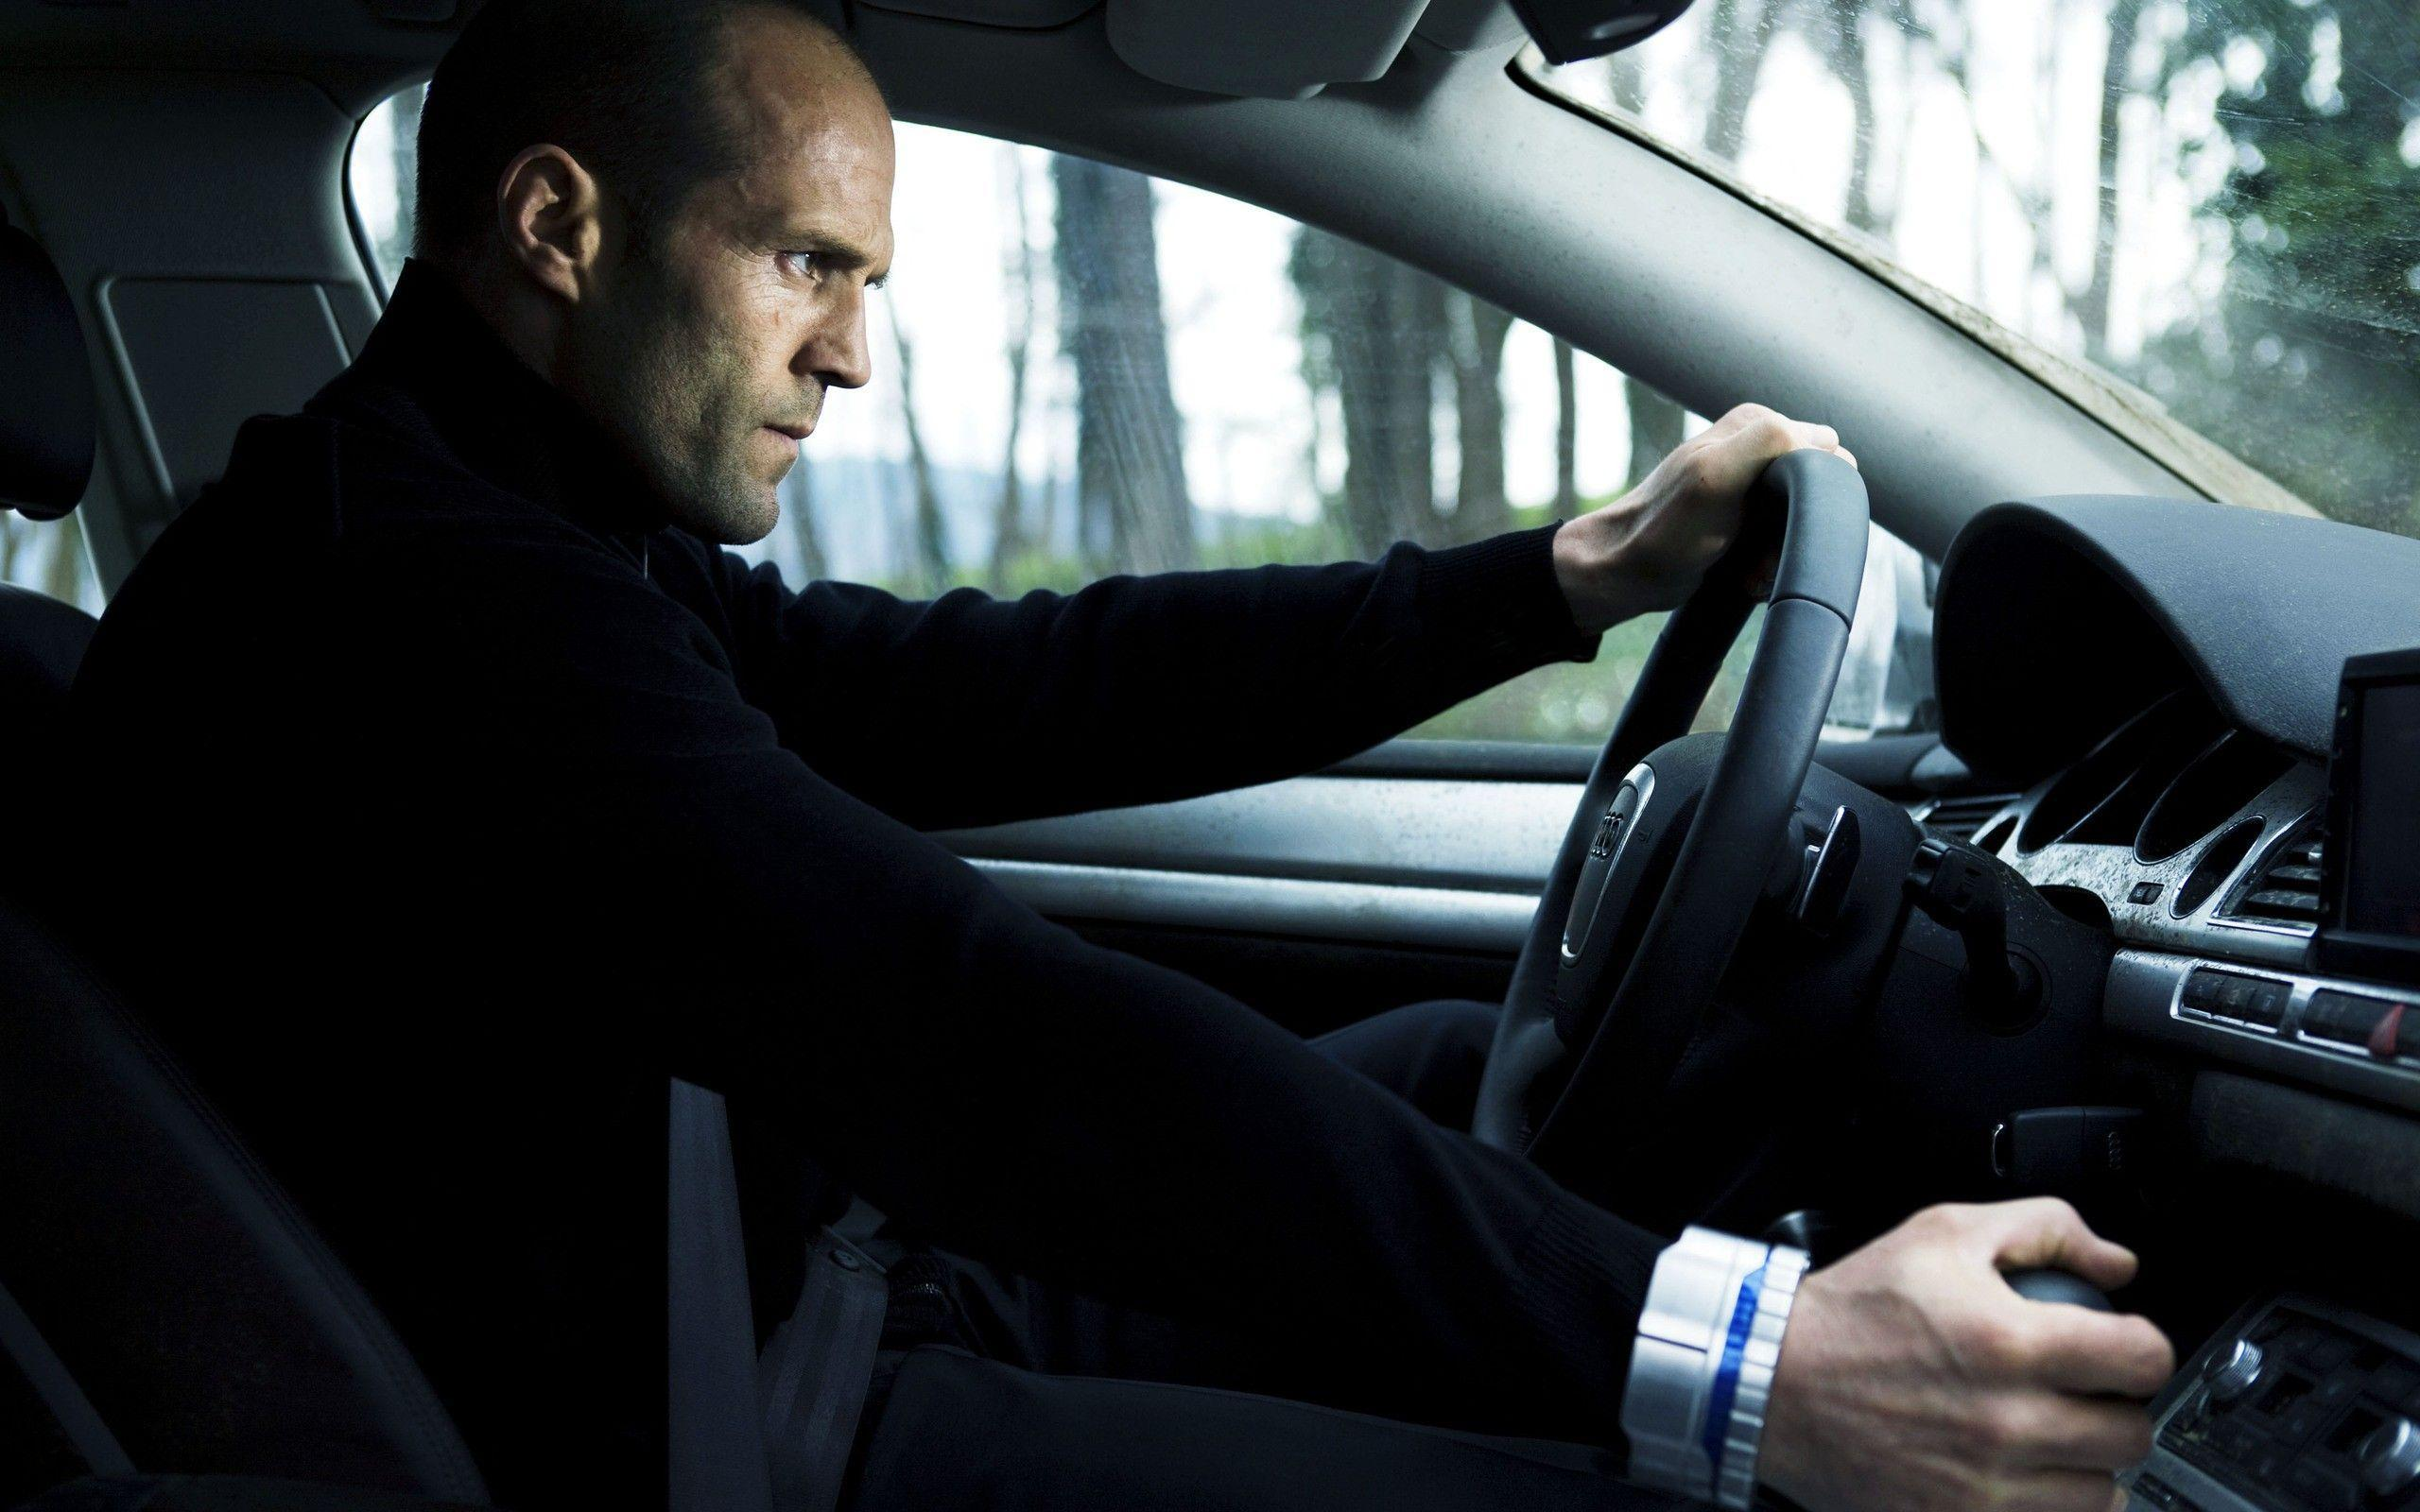 Jason Statham Wallpaper | Jason Statham Photos | Cool Wallpapers